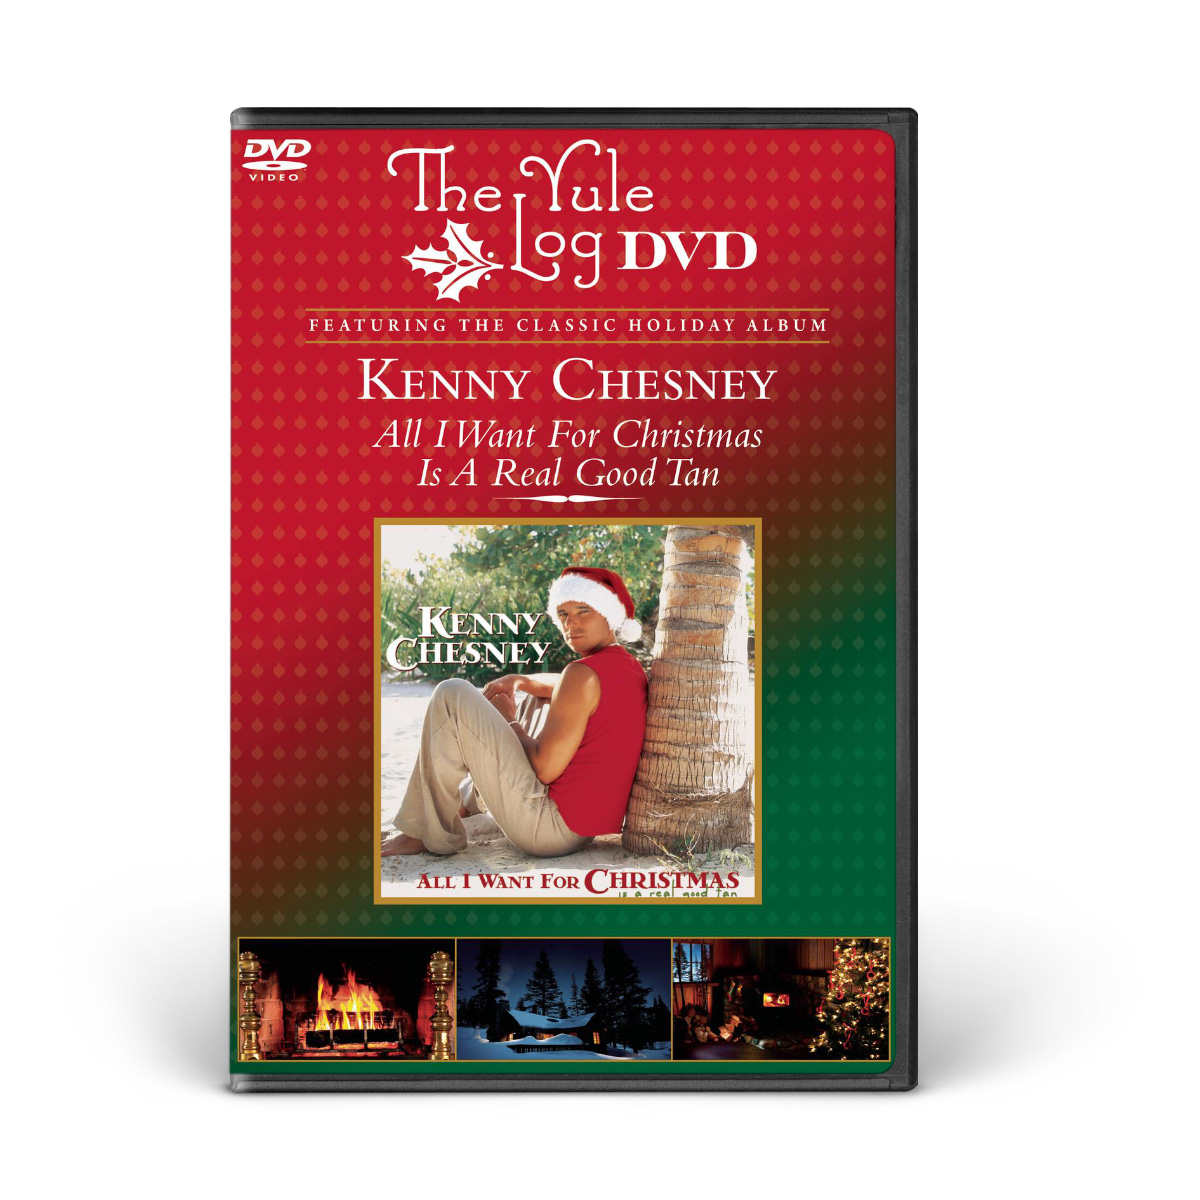 Kenny Chesney: All I Want For Christmas... - The Yule Log DVD | Shop ...